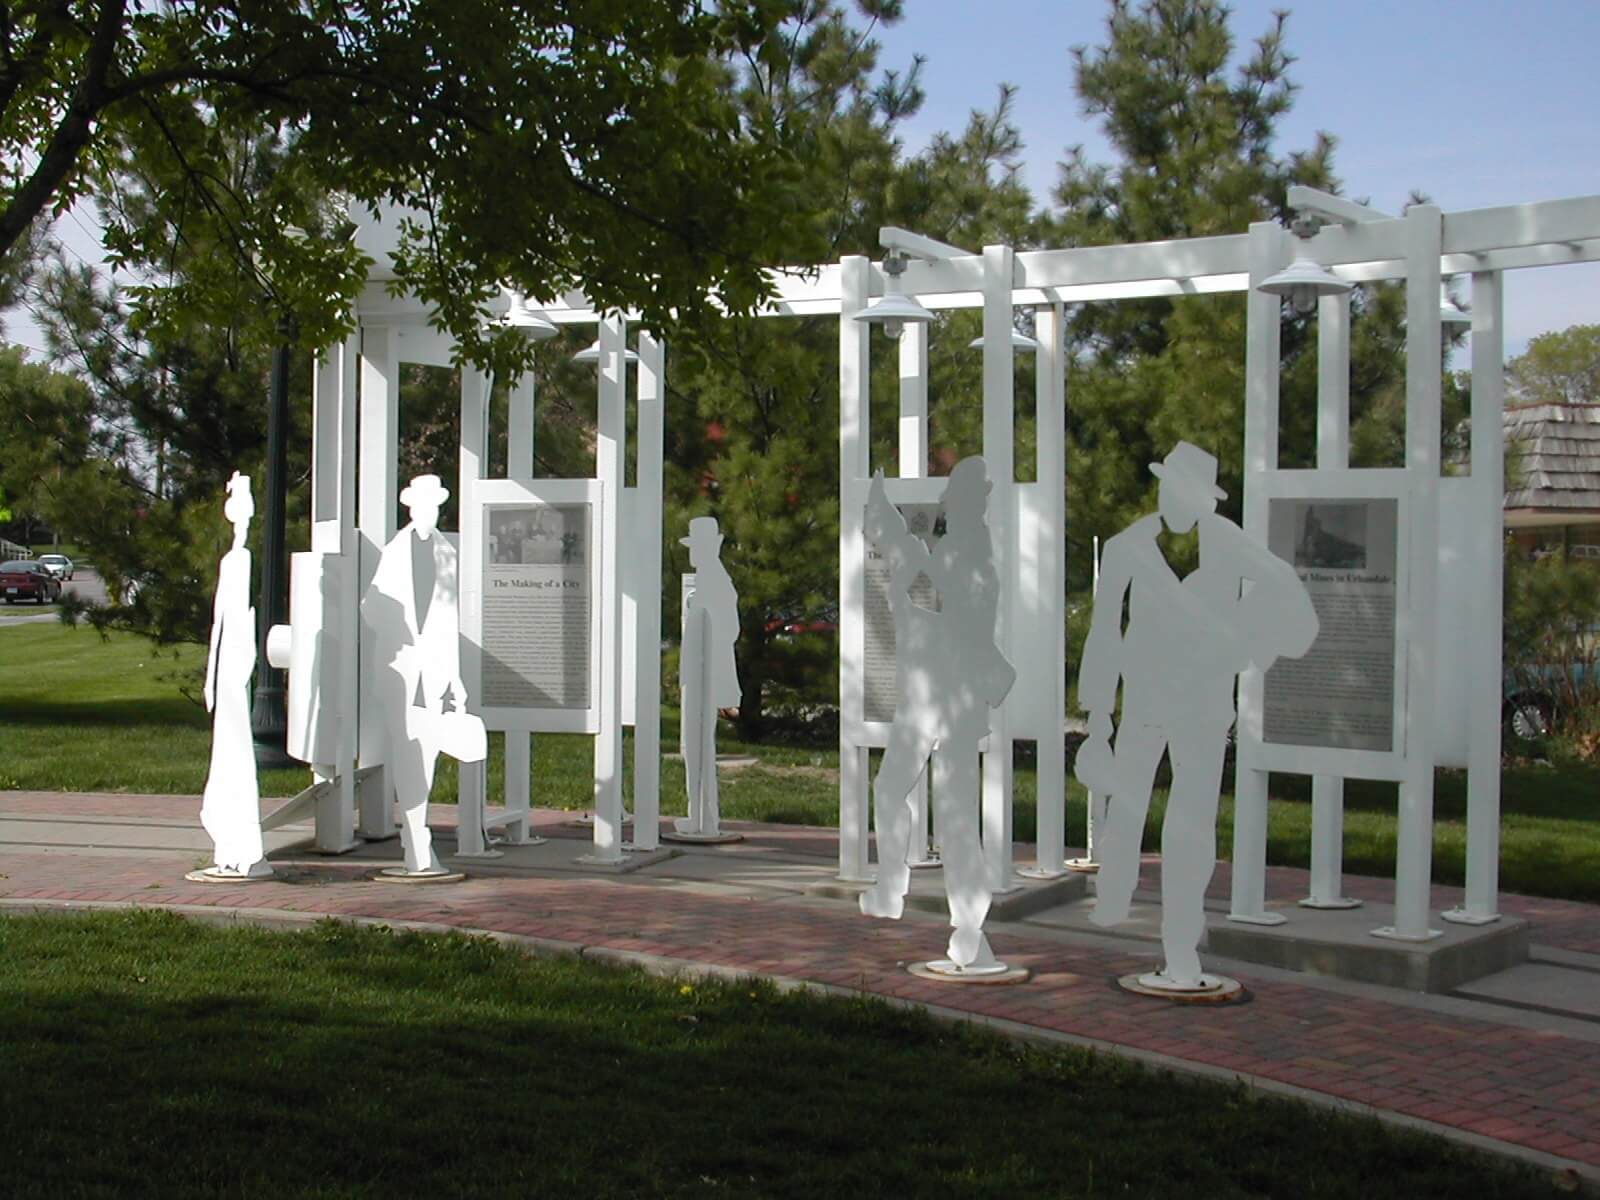 A sculpture/art installment of many silhouetted people.